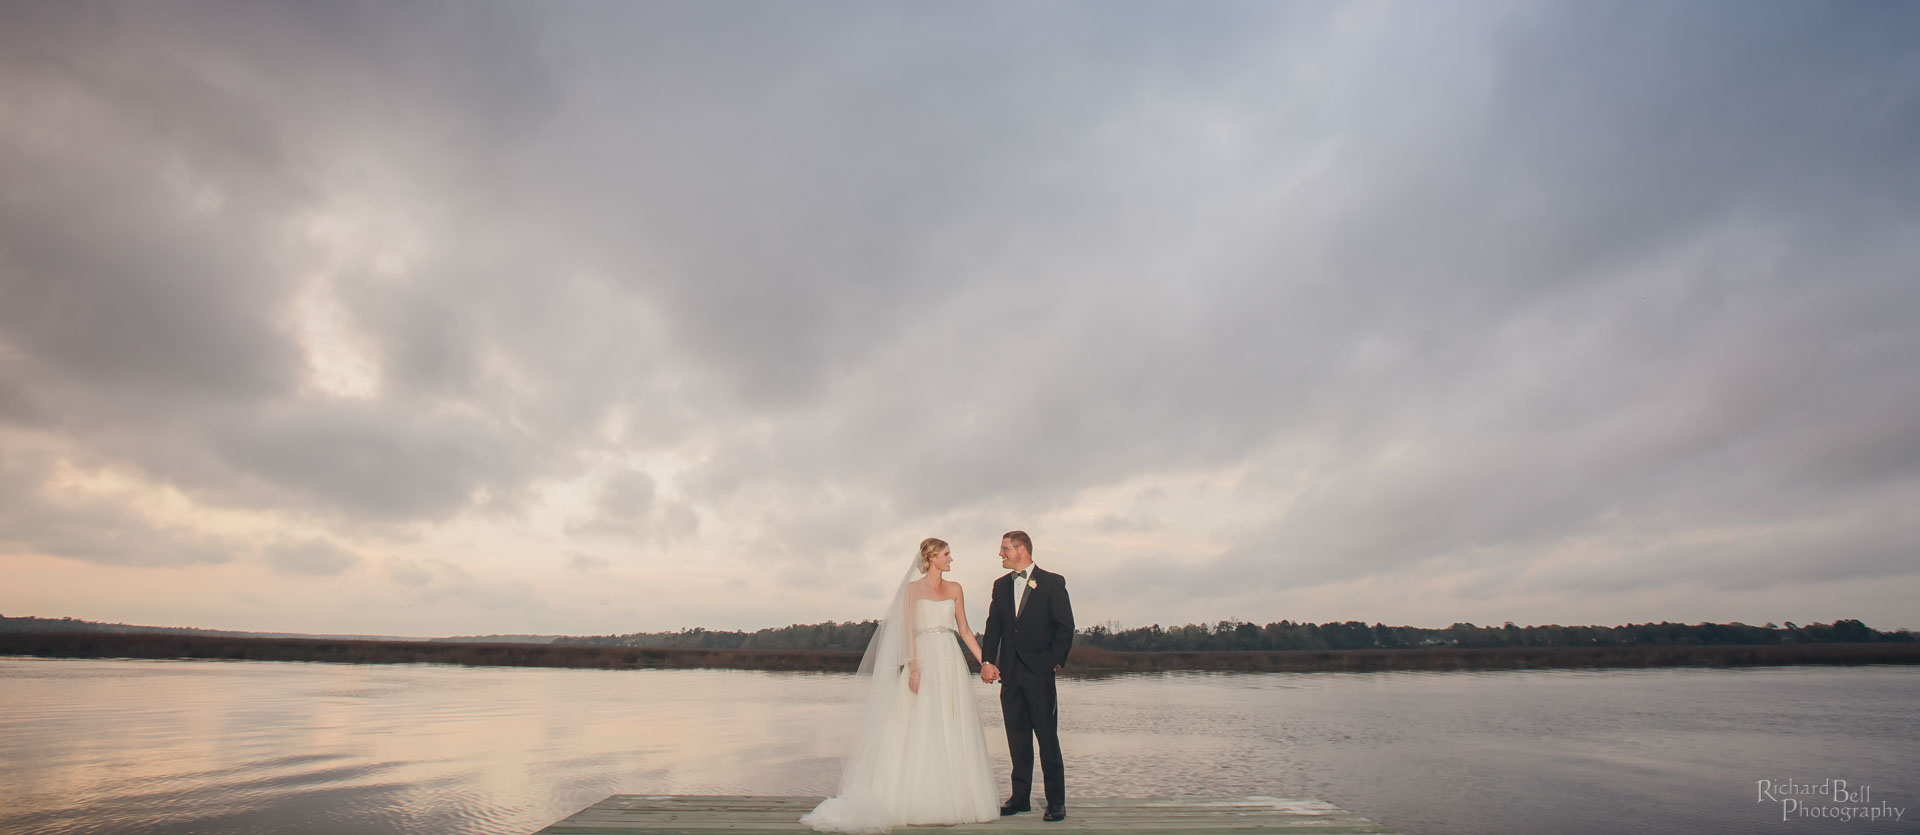 Bride and Groom on Dock at Magnolia